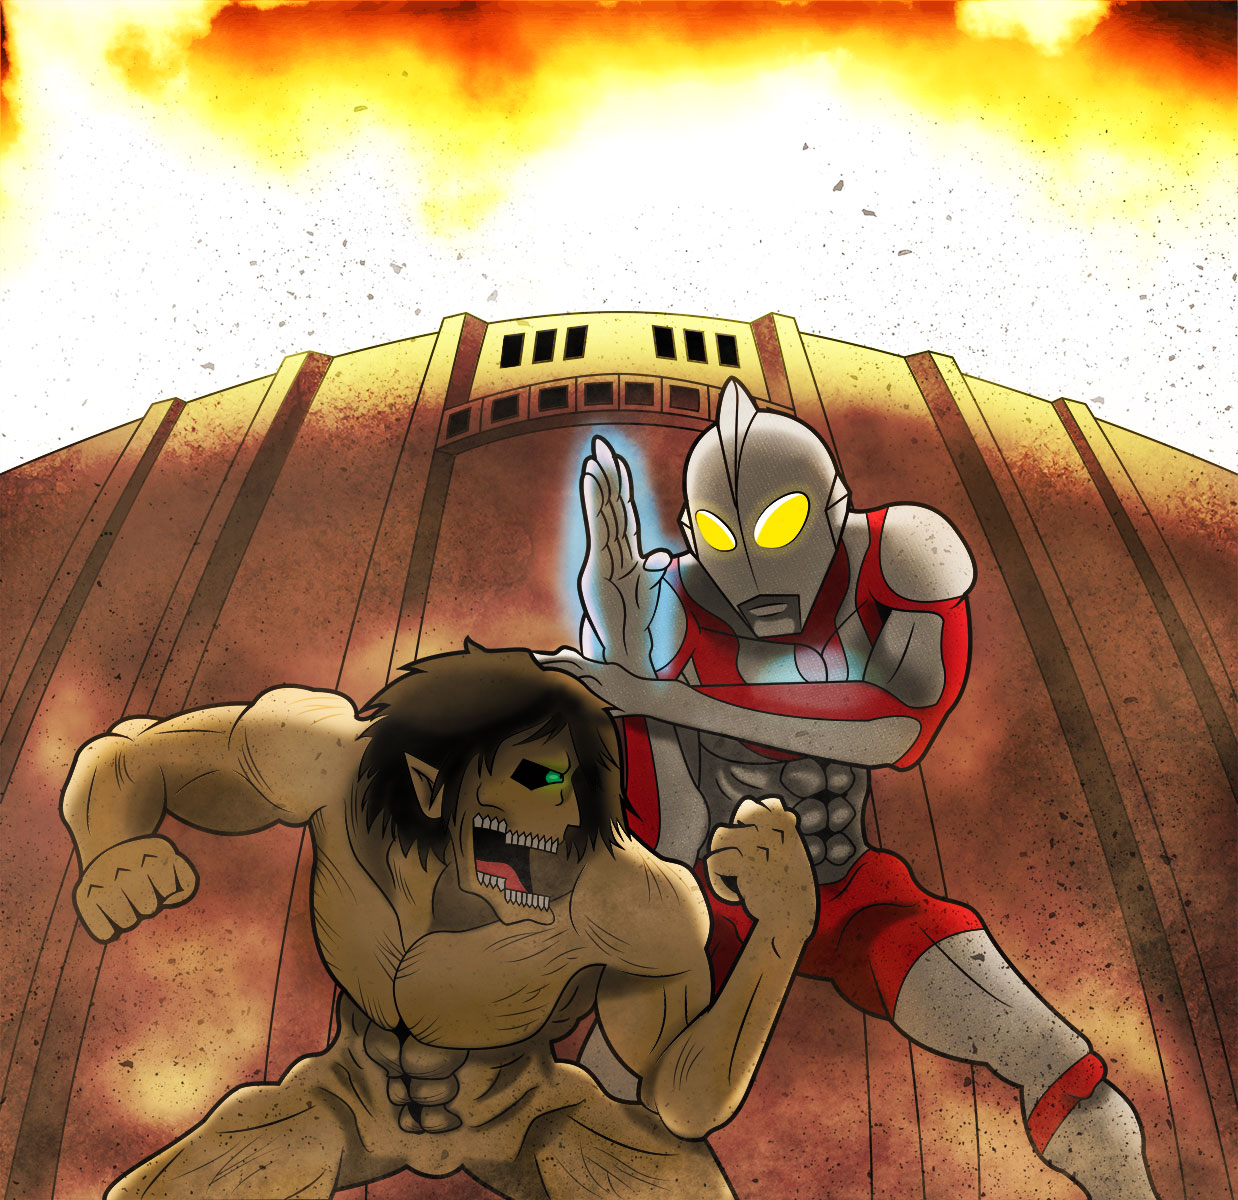 Ultraman vs Titan